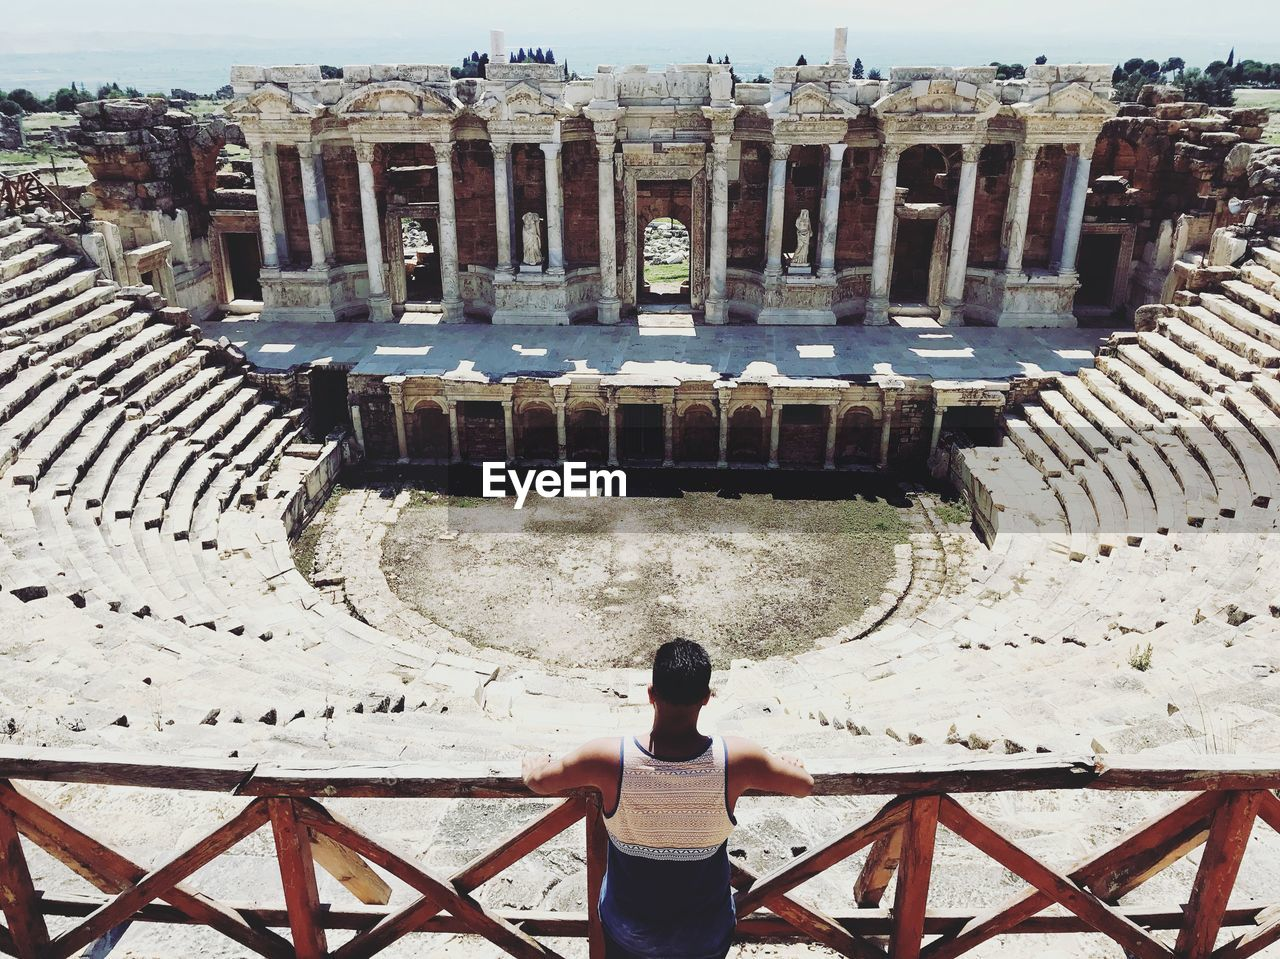 architecture, rear view, tourism, ancient, real people, lifestyles, built structure, history, travel destinations, leisure activity, the past, day, amphitheater, arts culture and entertainment, high angle view, travel, old ruin, one person, women, outdoors, ancient civilization, archaeology, architectural column, ruined